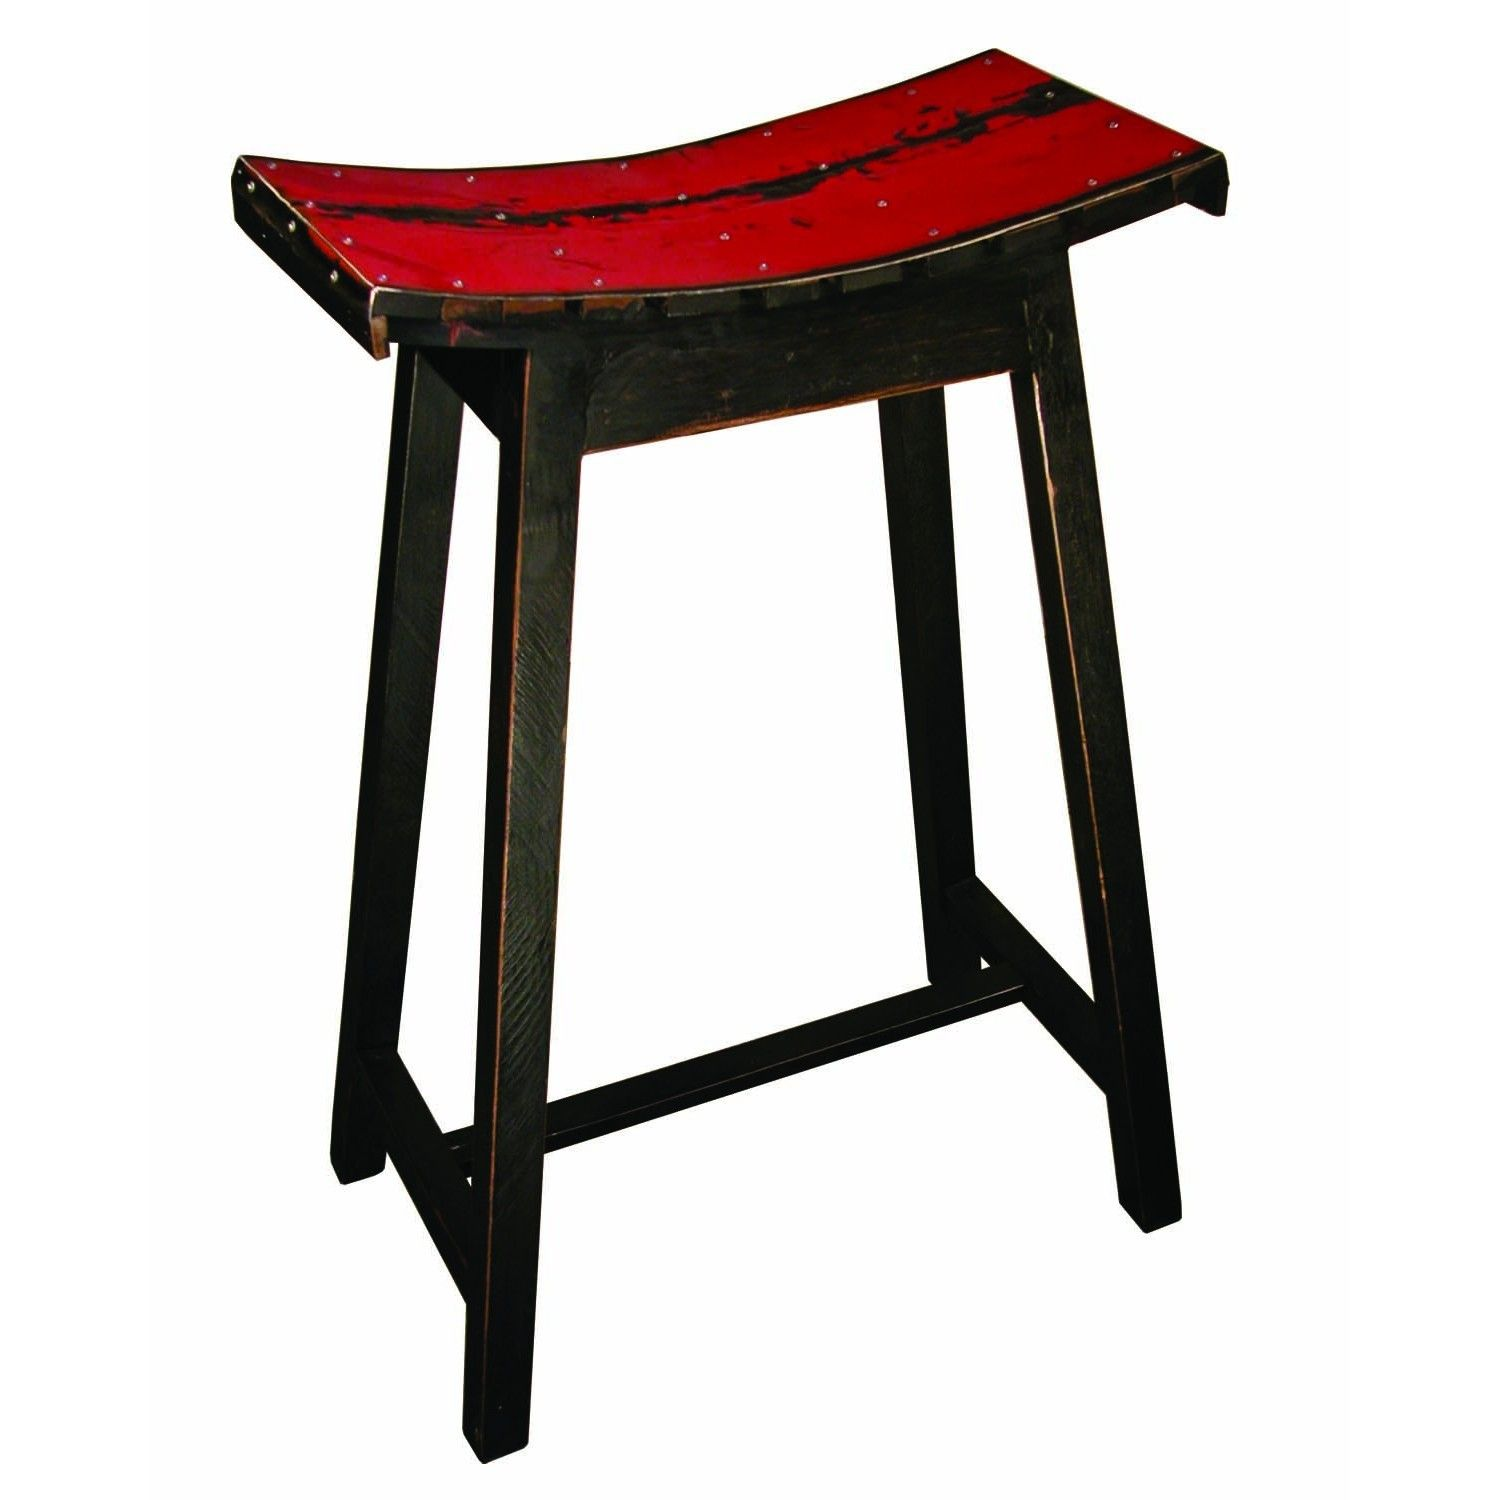 Merveilleux Interesting Kitchen Stools Design With Bar Stools Target: Black Saddle Bar Stools  Target With Wrought